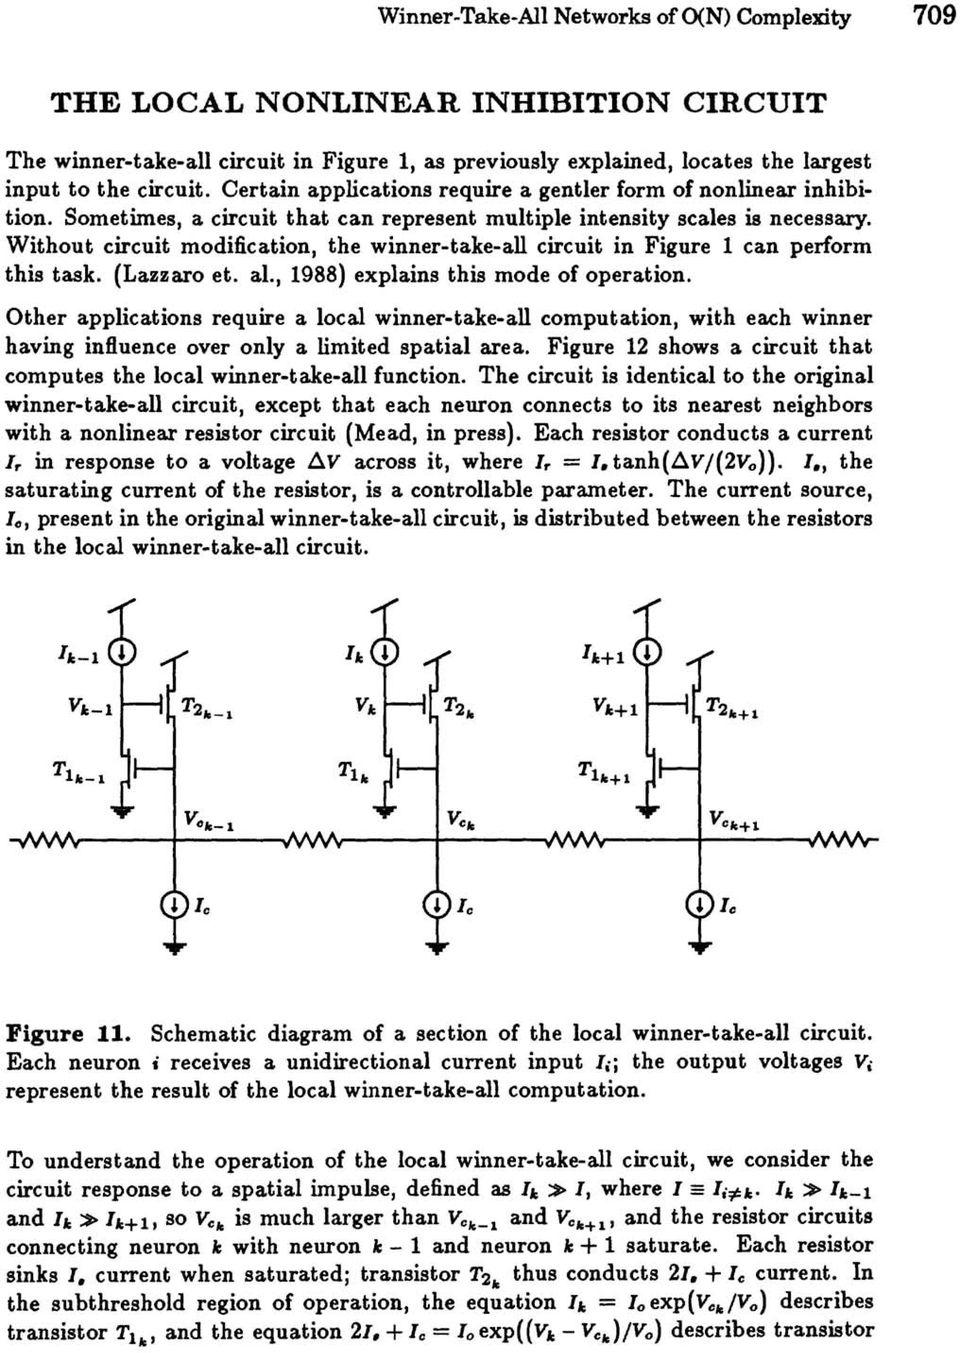 Without circuit modification, the winner-take-all circuit in Figure 1 can perform this task. (Lazzaro et. al., 1988) explains this mode of operation.